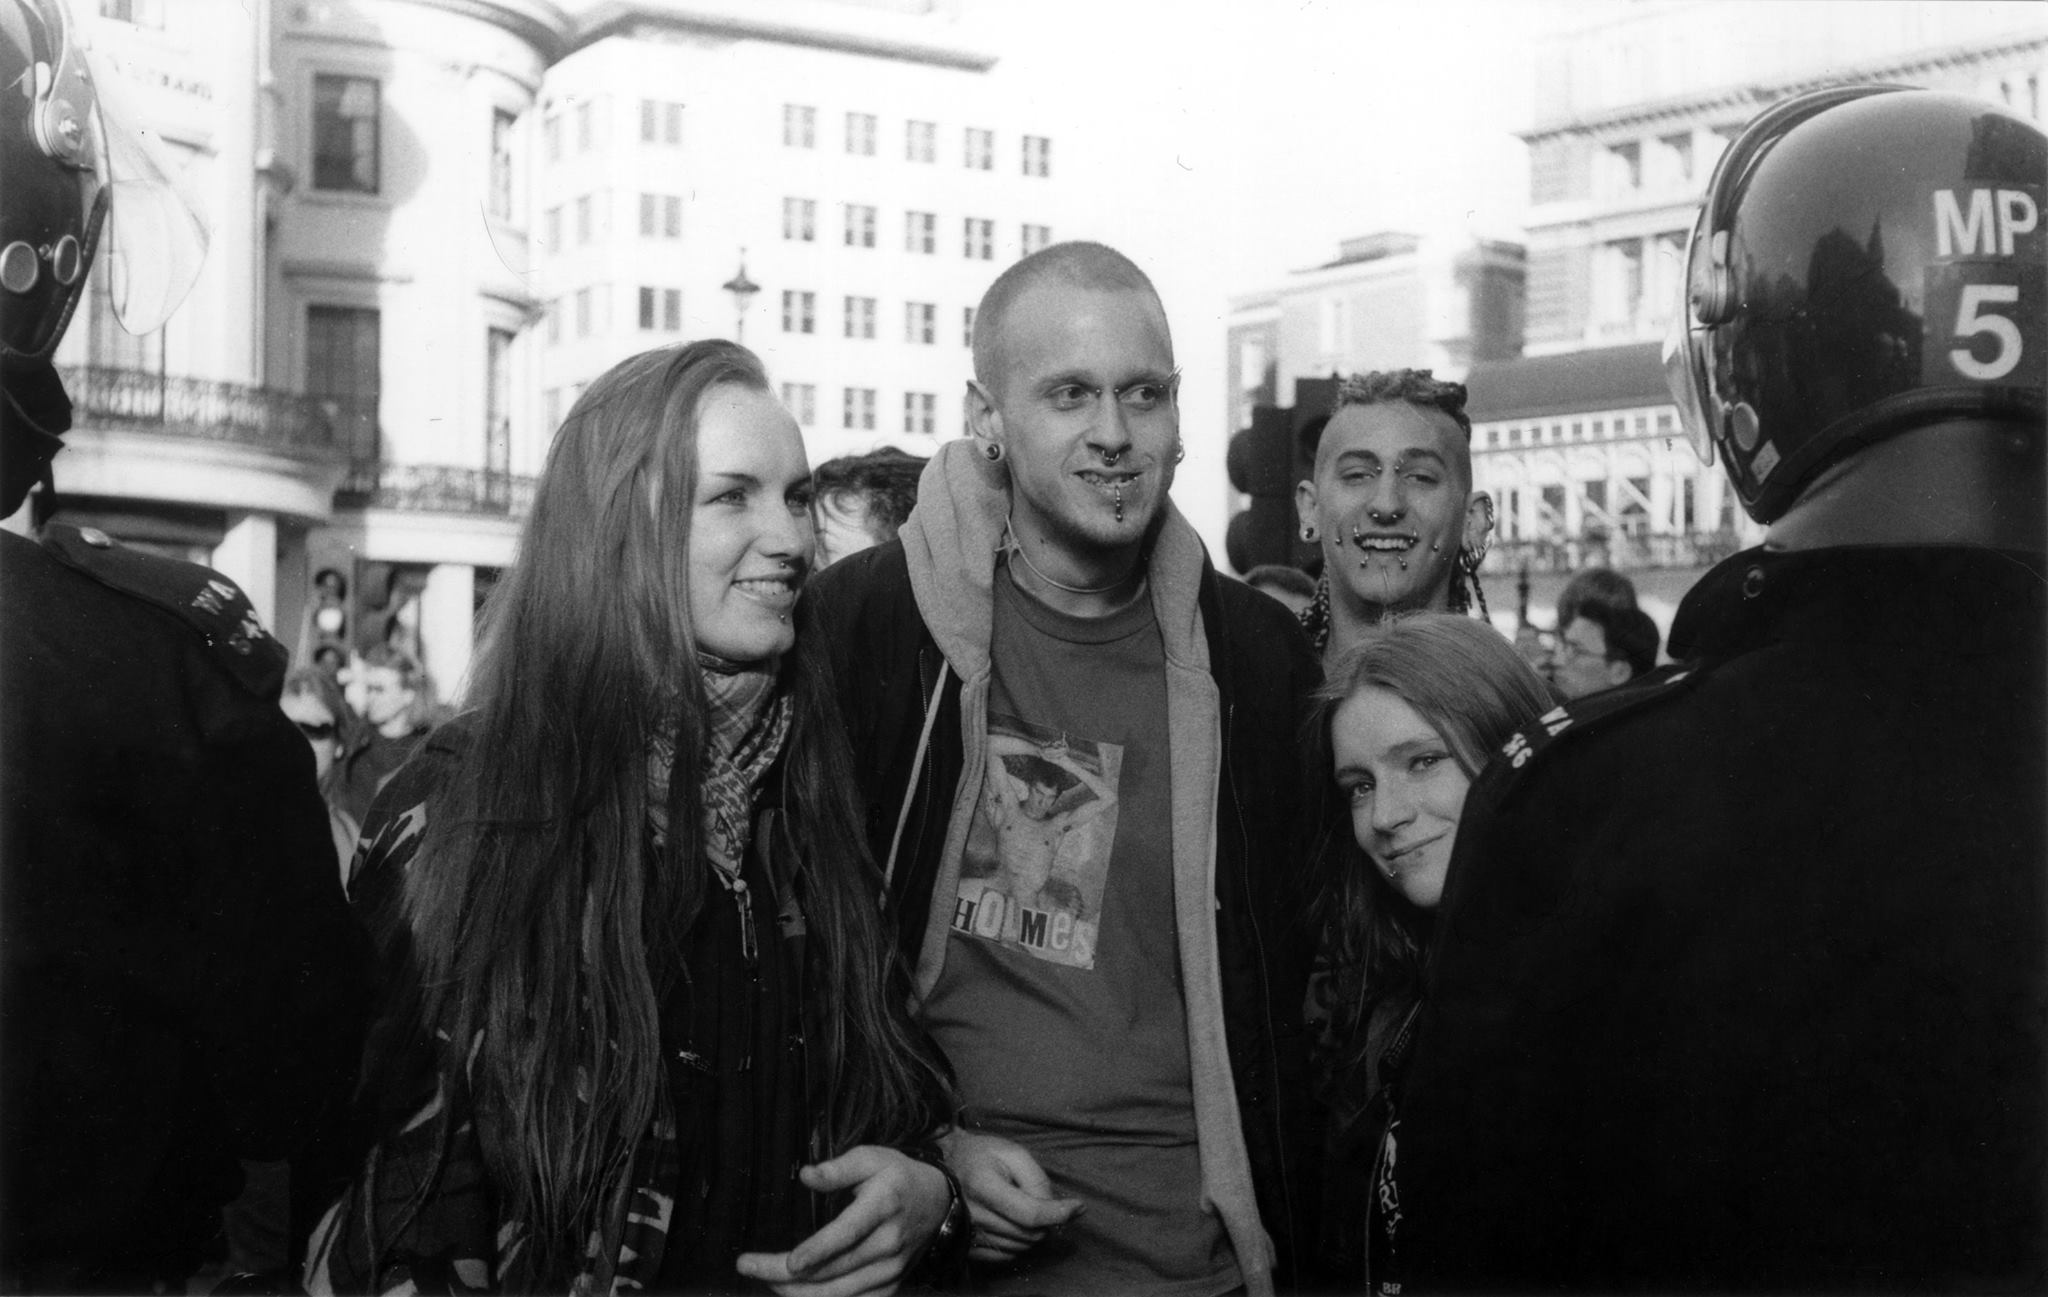 With Michael (centre) and friends at an anti-criminal justice bill demo, mid 90s